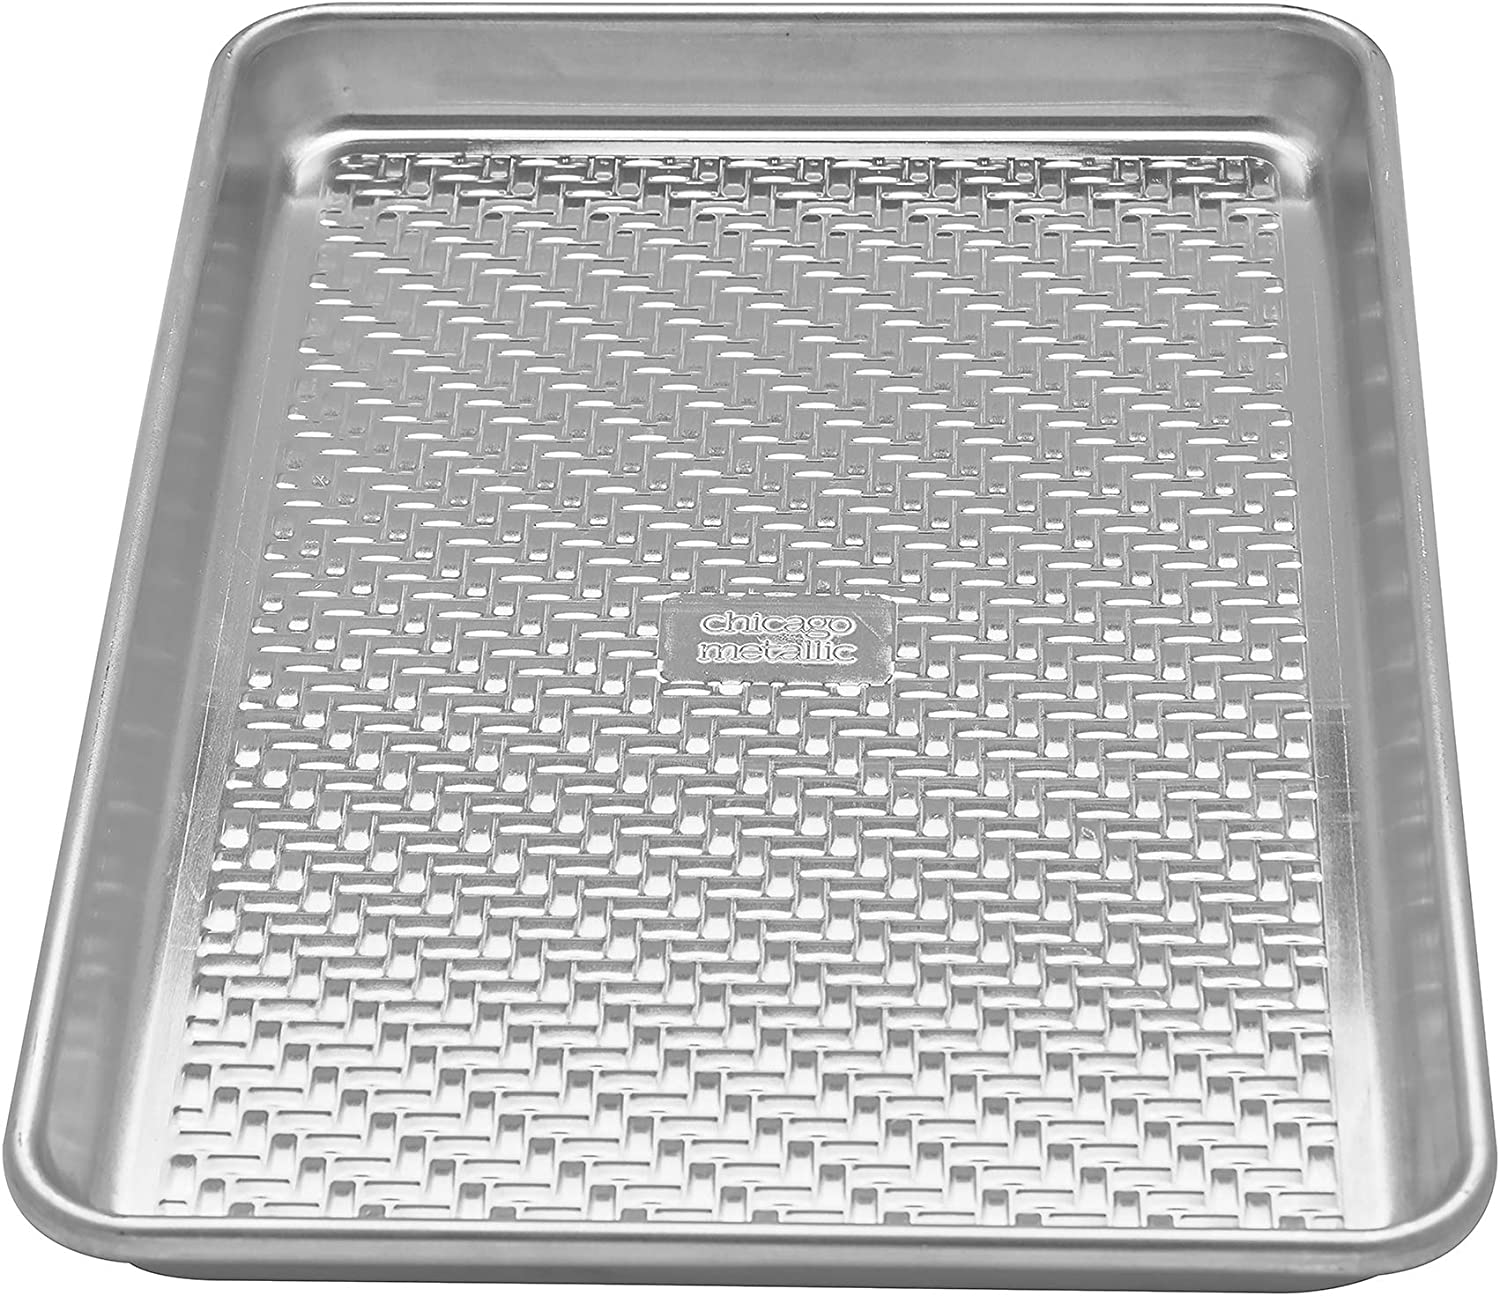 Chicago Metallic Uncoated Textured Aluminum Small Cookie/Baking Sheet, 9-Inch-by-13-Inch, Silver